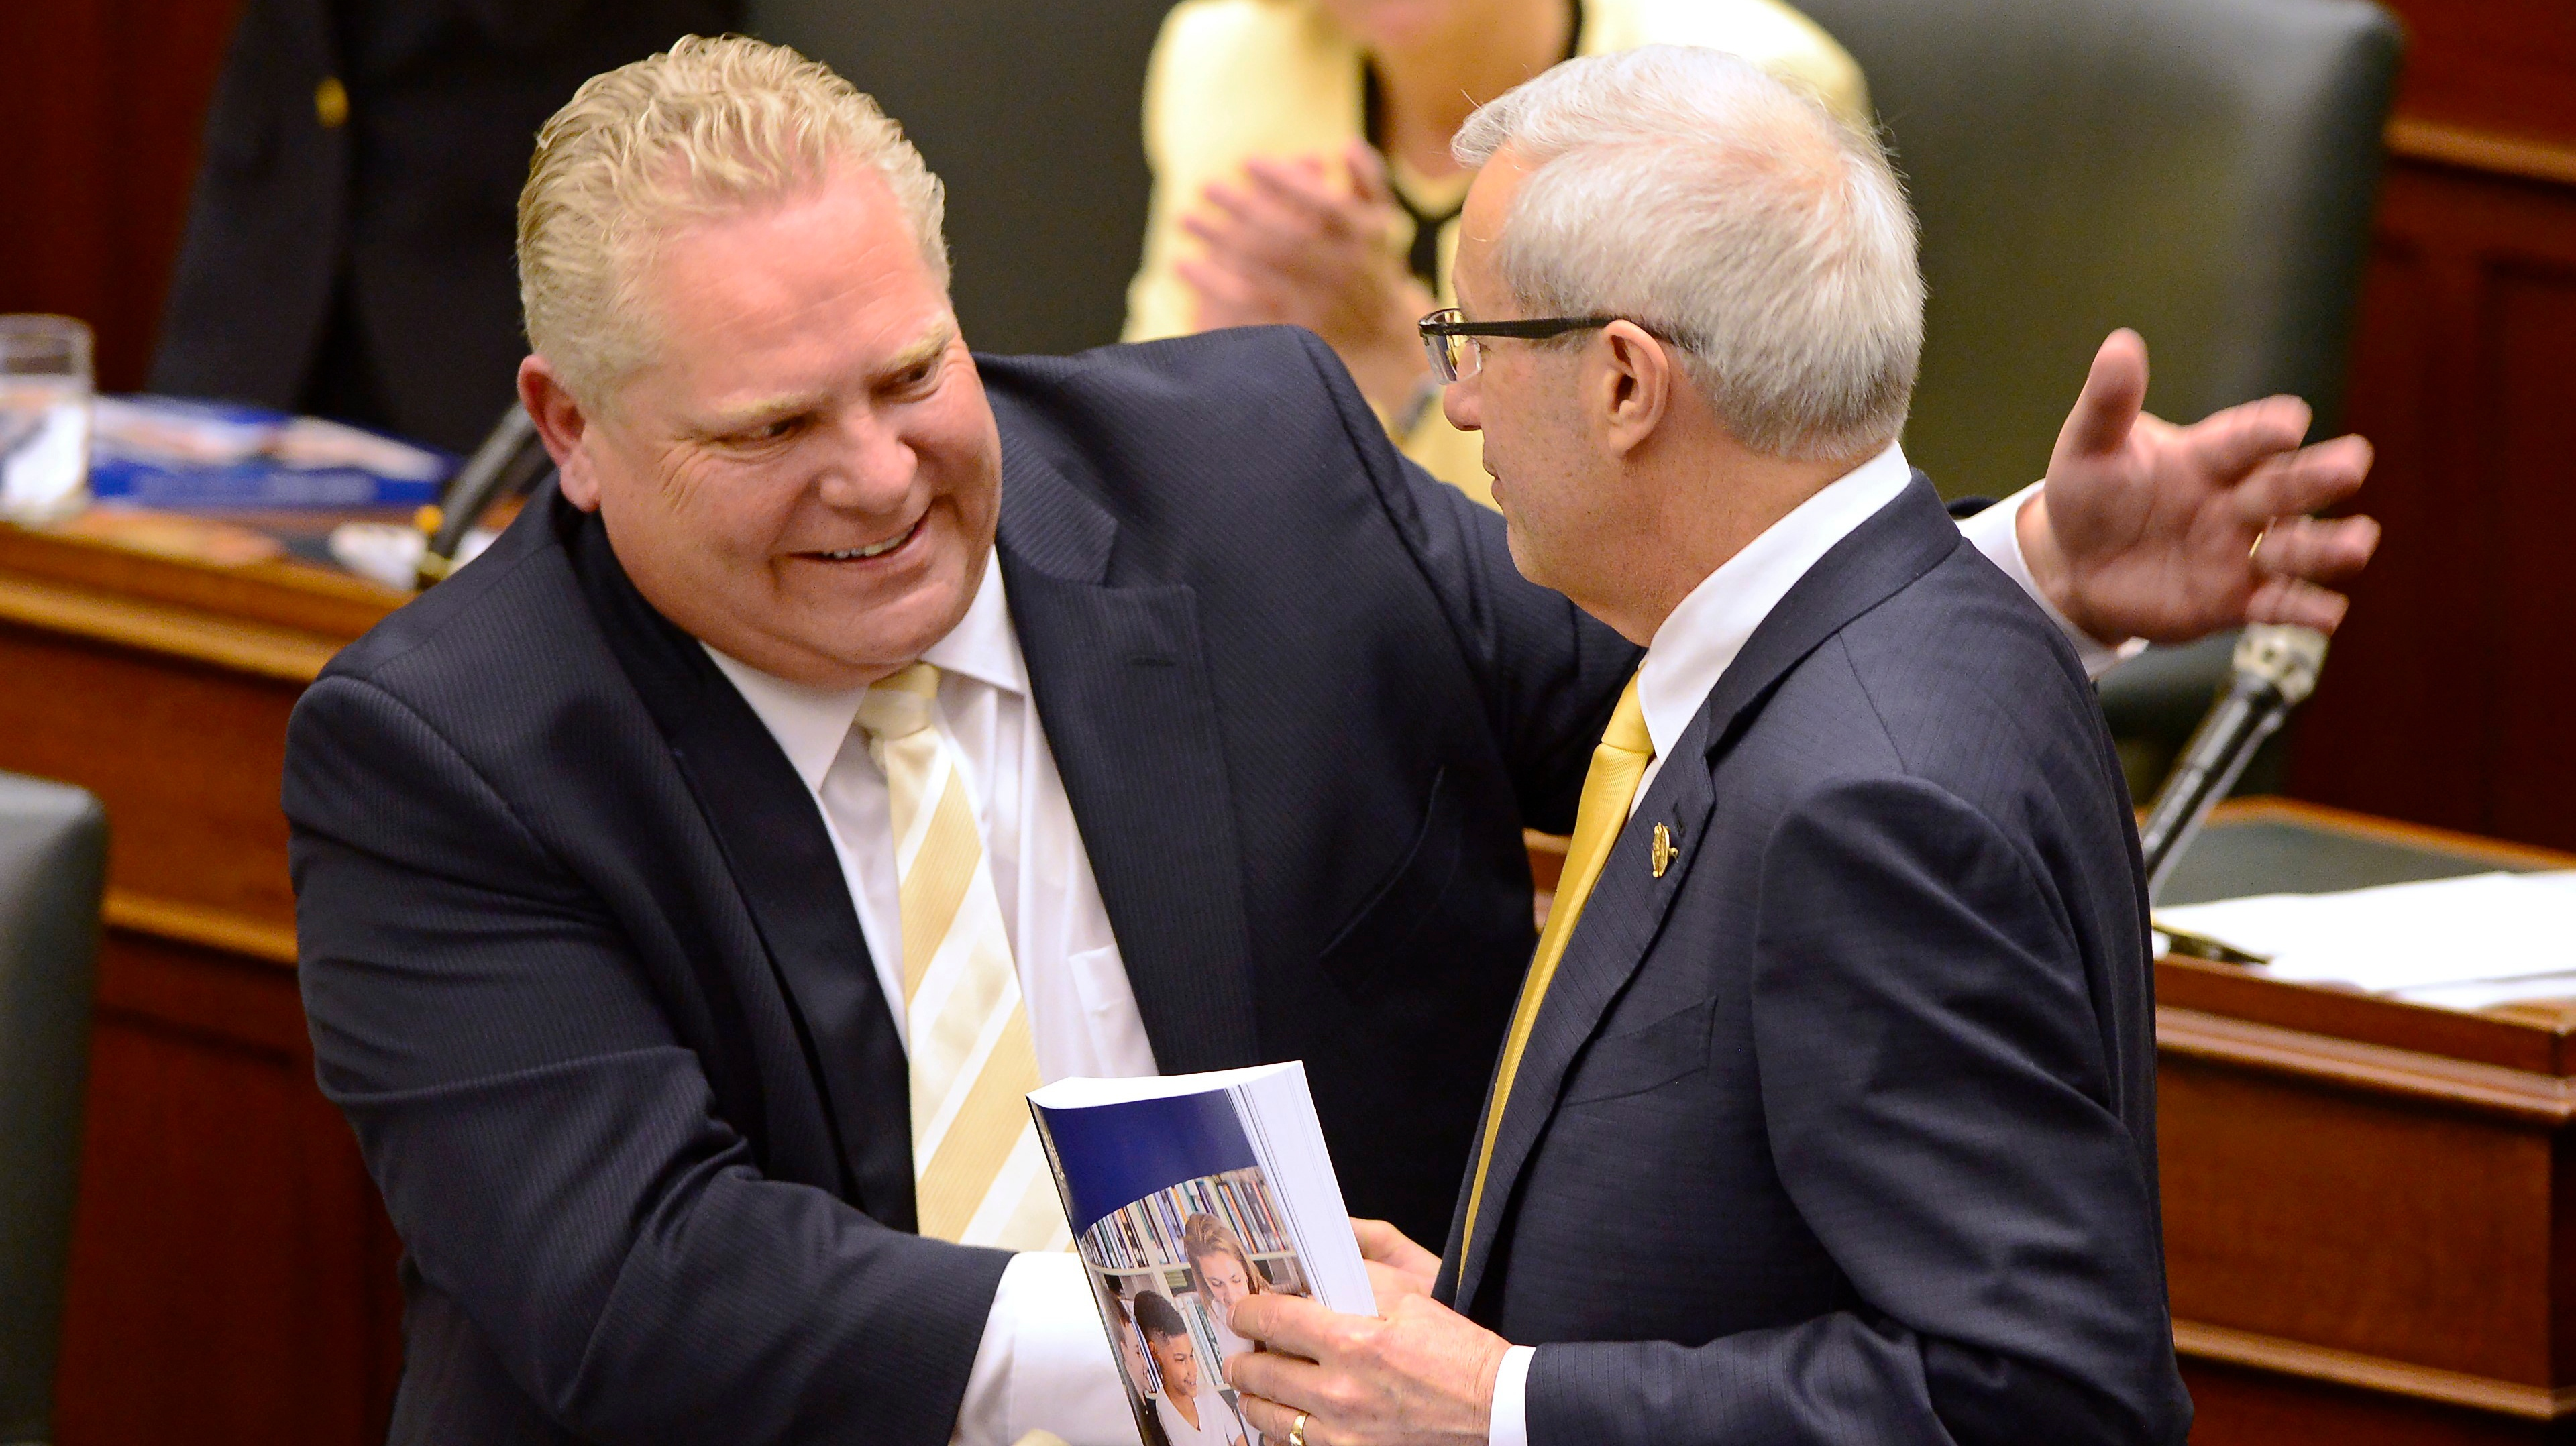 Budget Day, Ontario PC's to table first budget since election